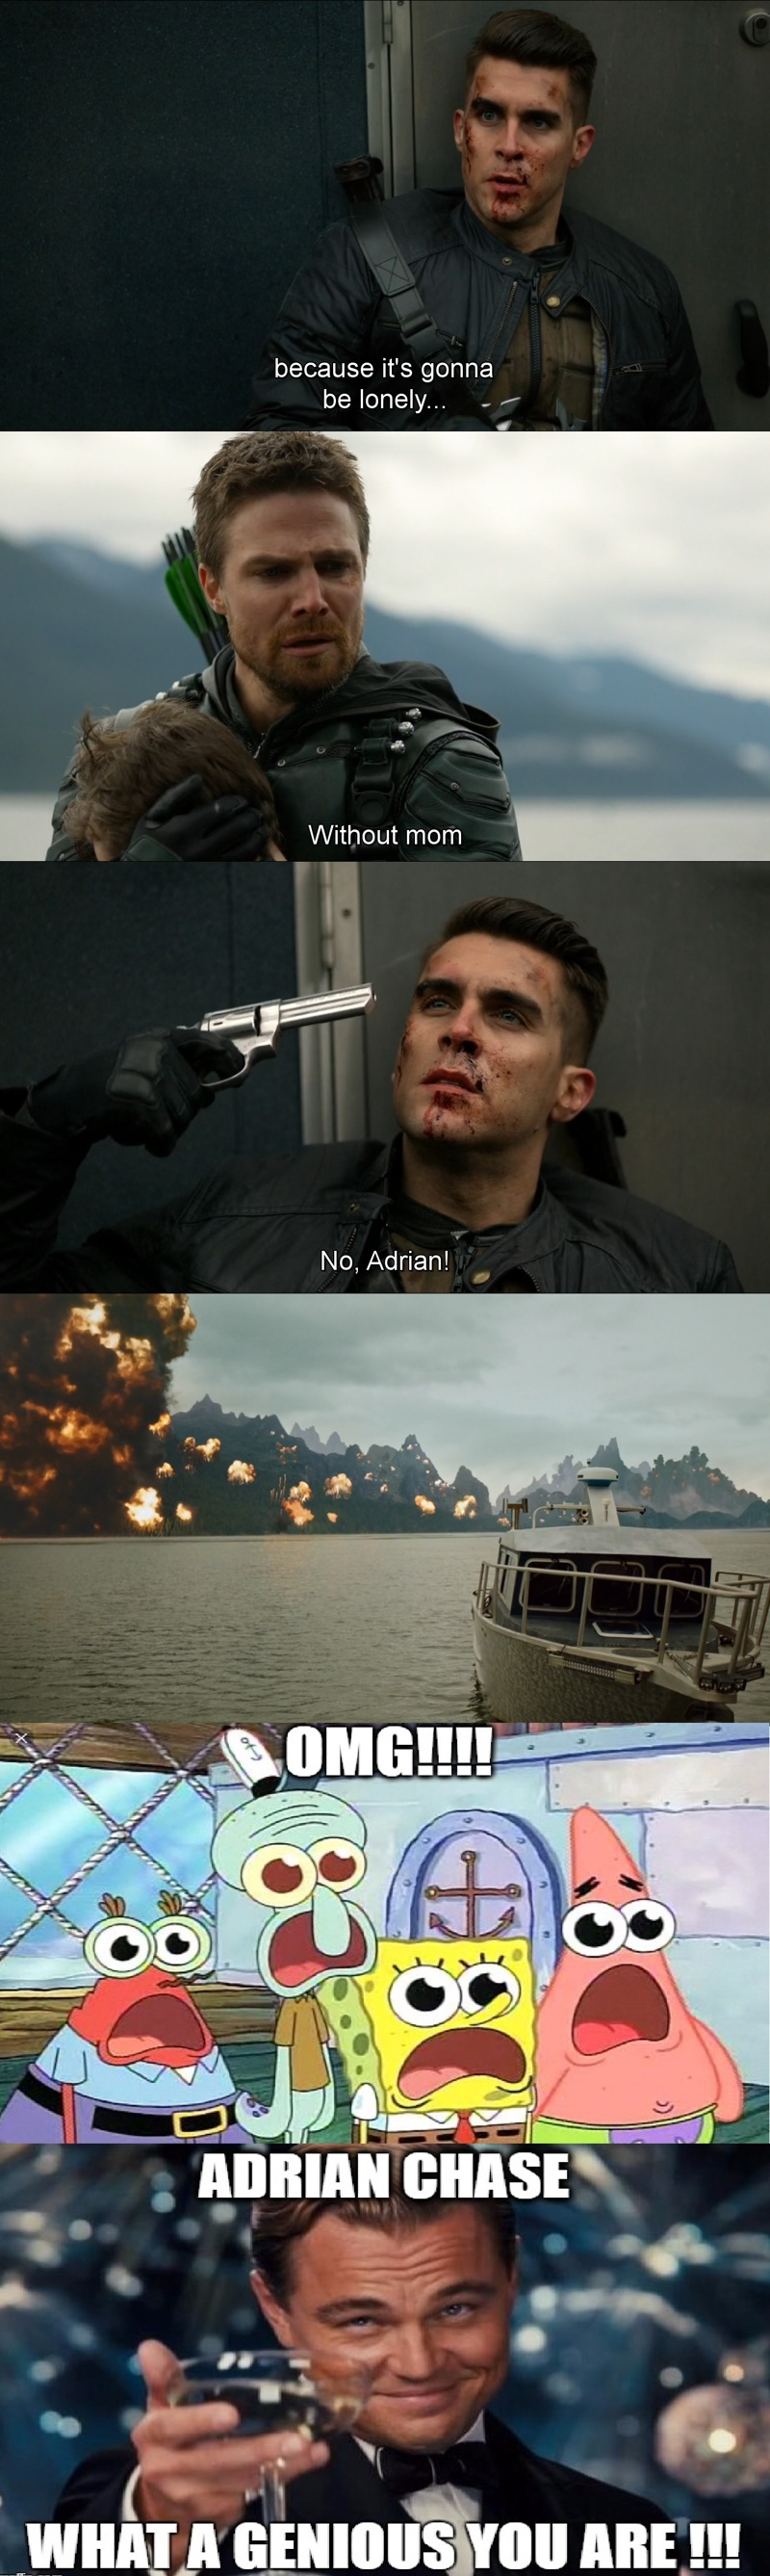 BEST SEASON FINALE OF ARROW EVER!!!!